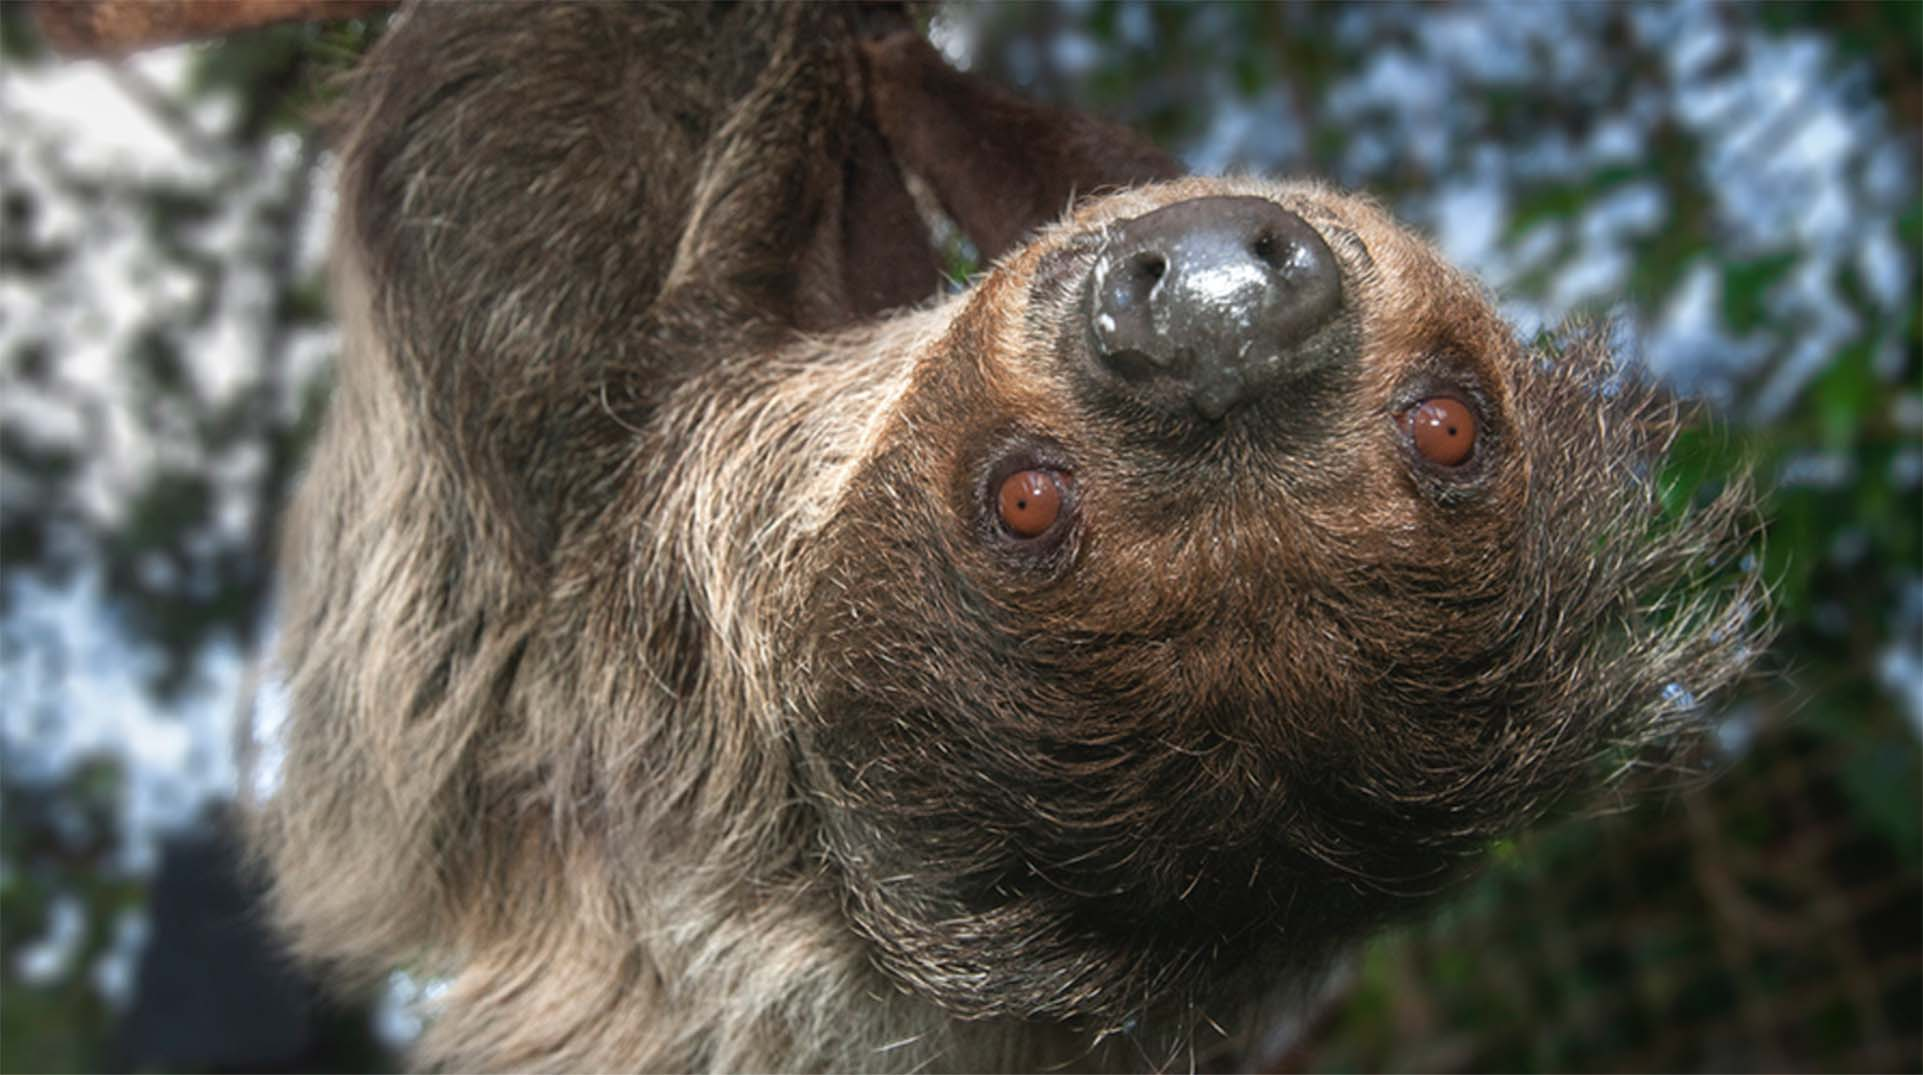 A two-toed sloth hanging upside down from a branch.